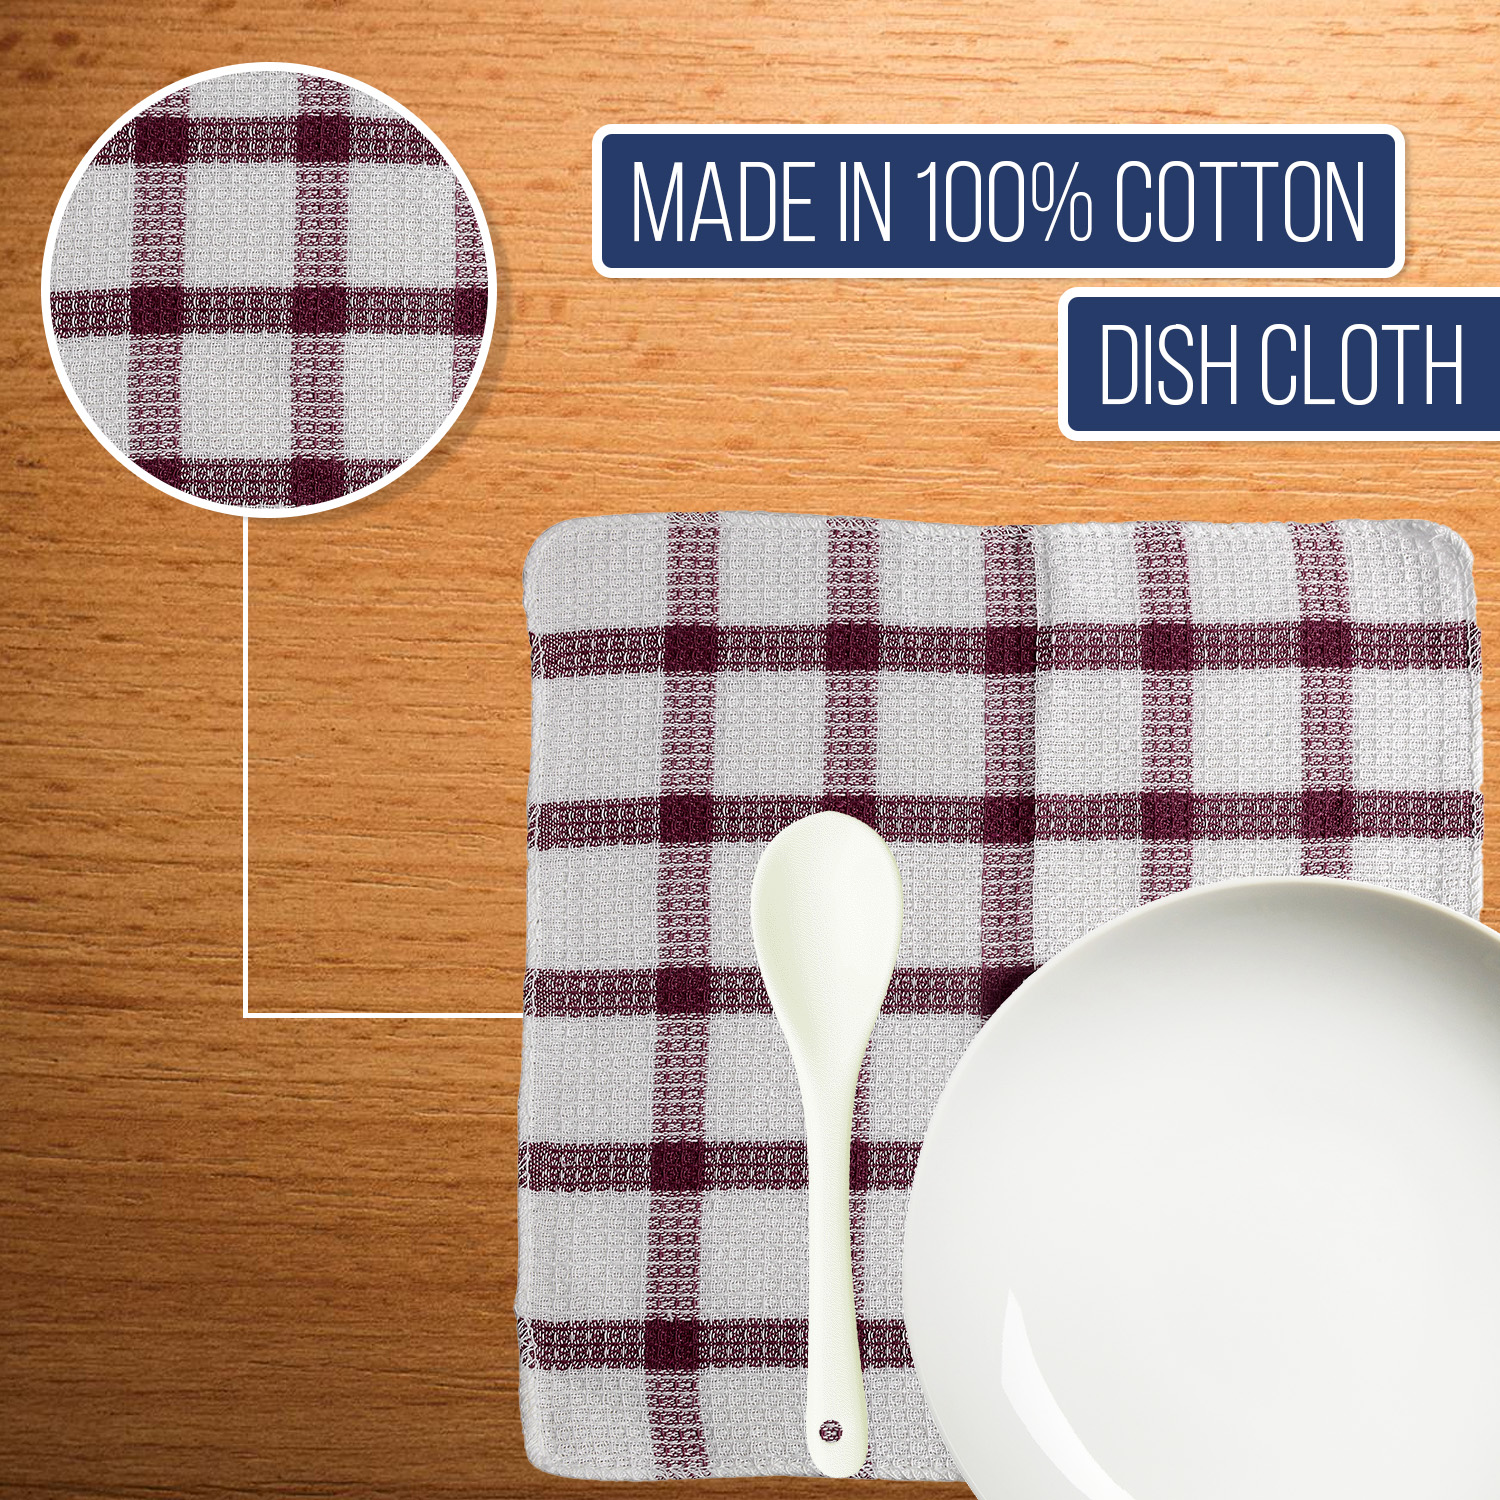 Set-of-24-Checkered-100-Cotton-Dish-Cloth-Kitchen-Cleaning-Cloth thumbnail 18